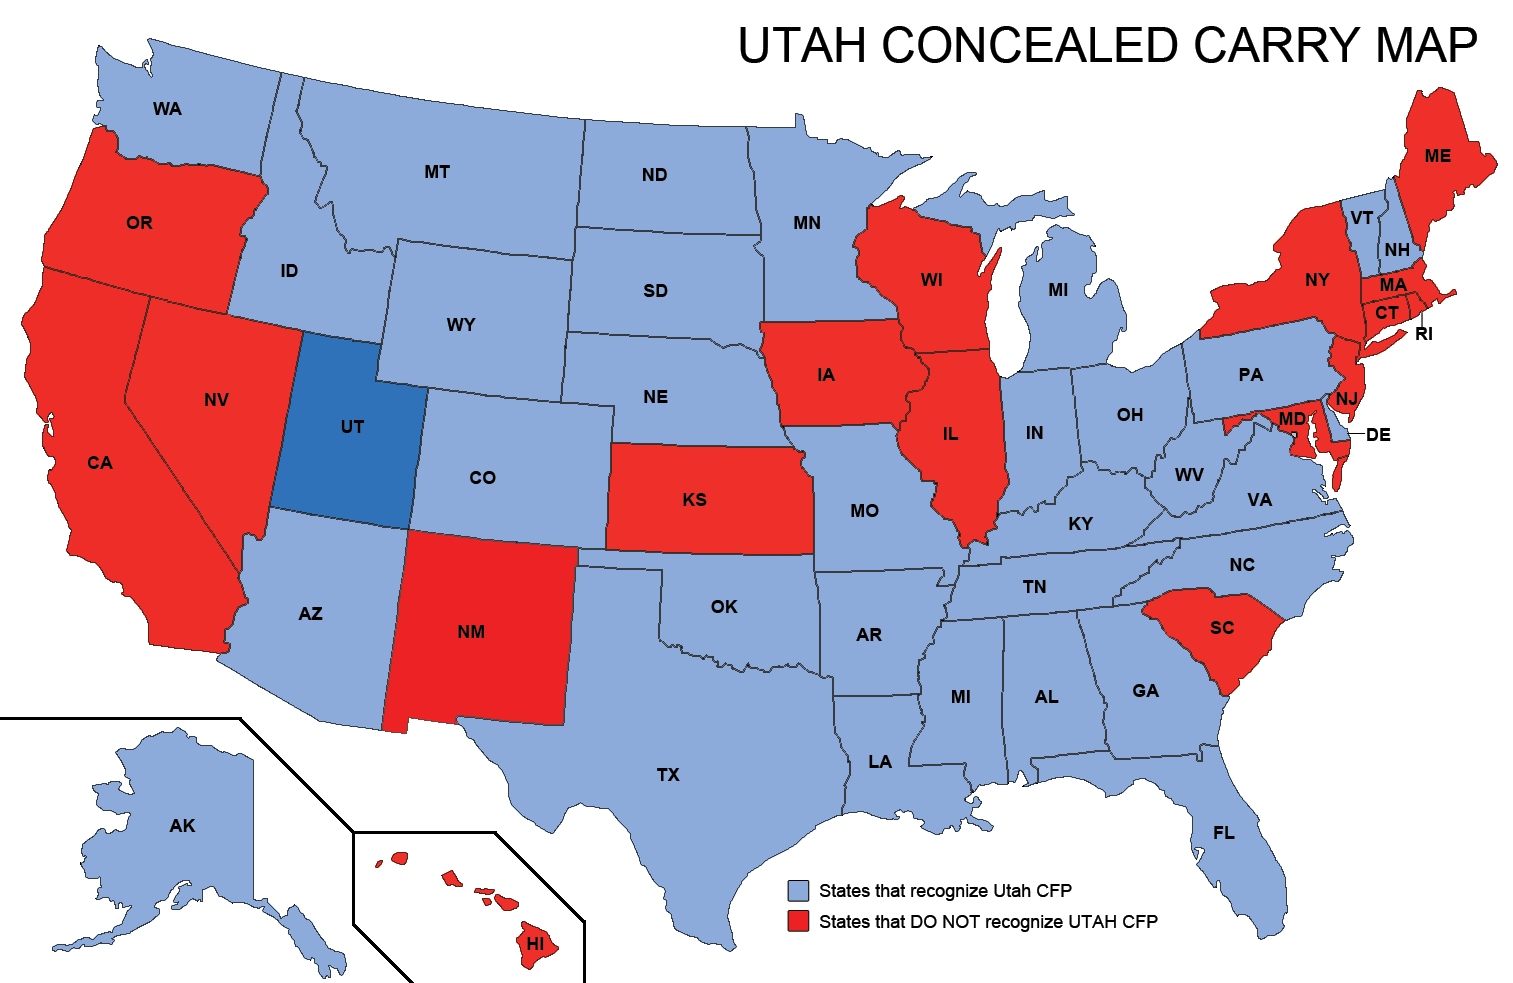 Utah Concealed Weapons Permit Reciprocity Map | misc | Pinterest ...